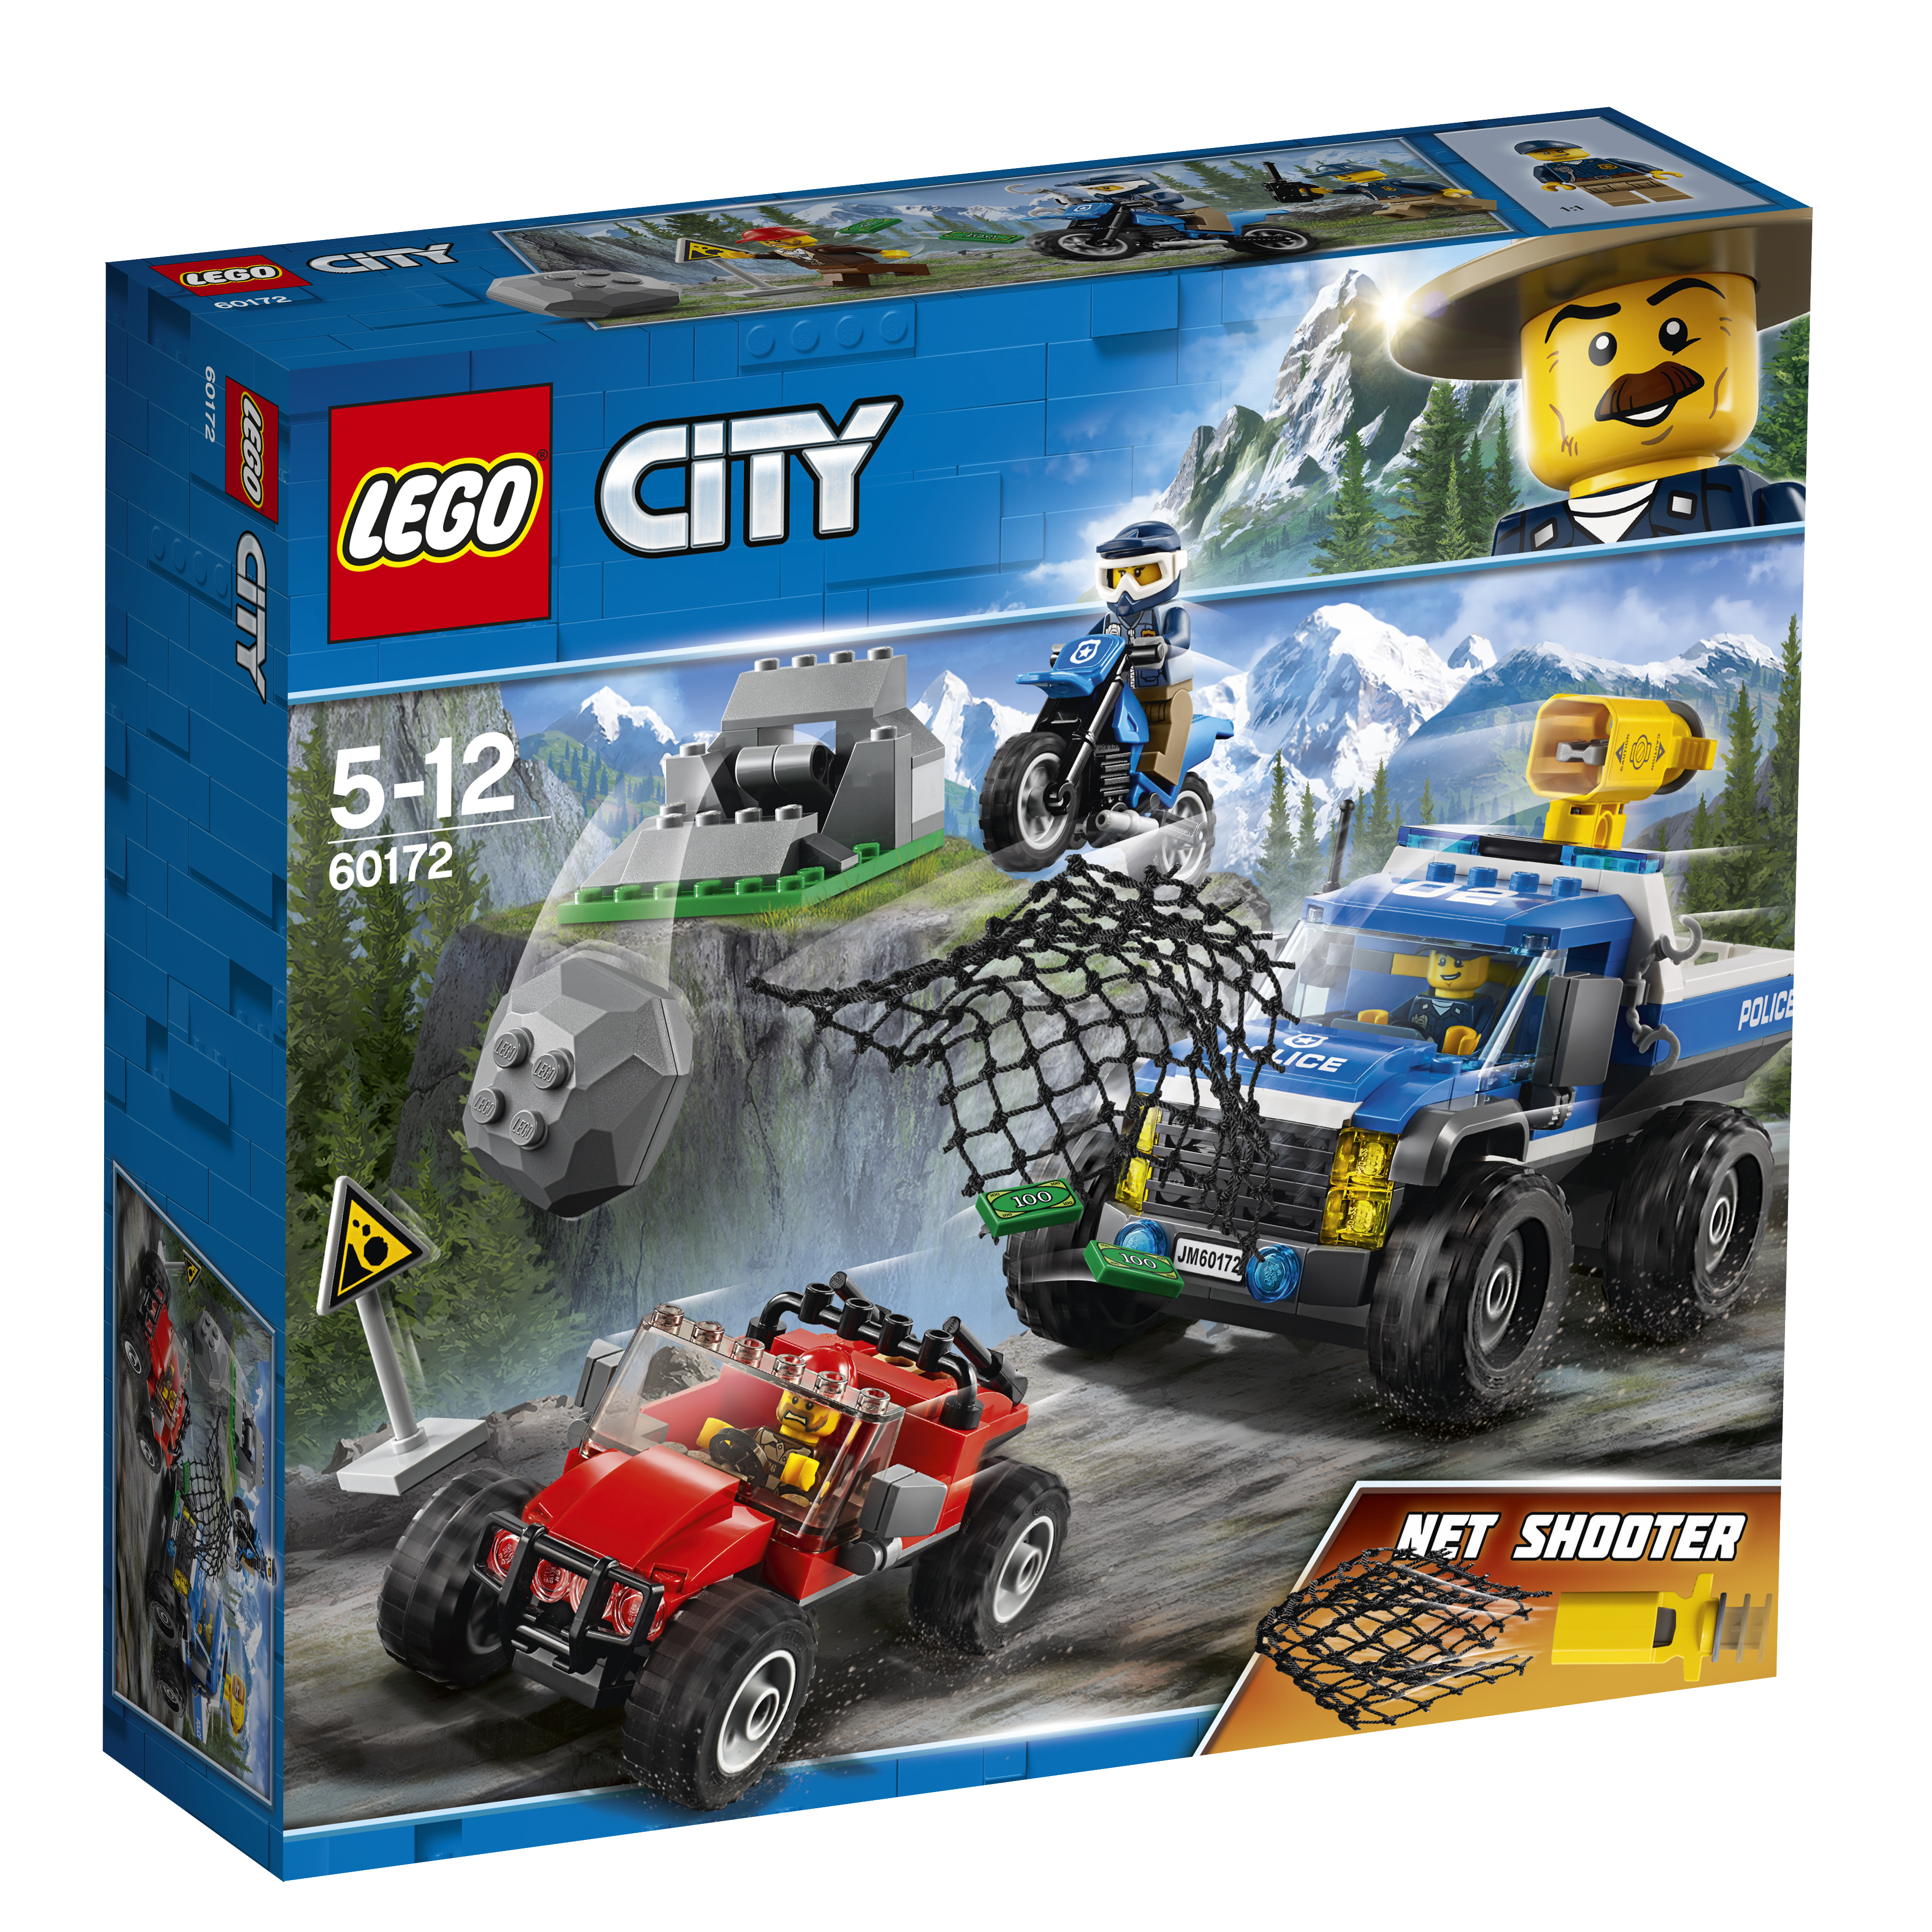 Конструктор LEGO City Police 60172 Погоня по грунтовой дороге free shipping c7769 60384 c7769 60172 drive roller encoder sensor for hp500 800 designjet plotter parts